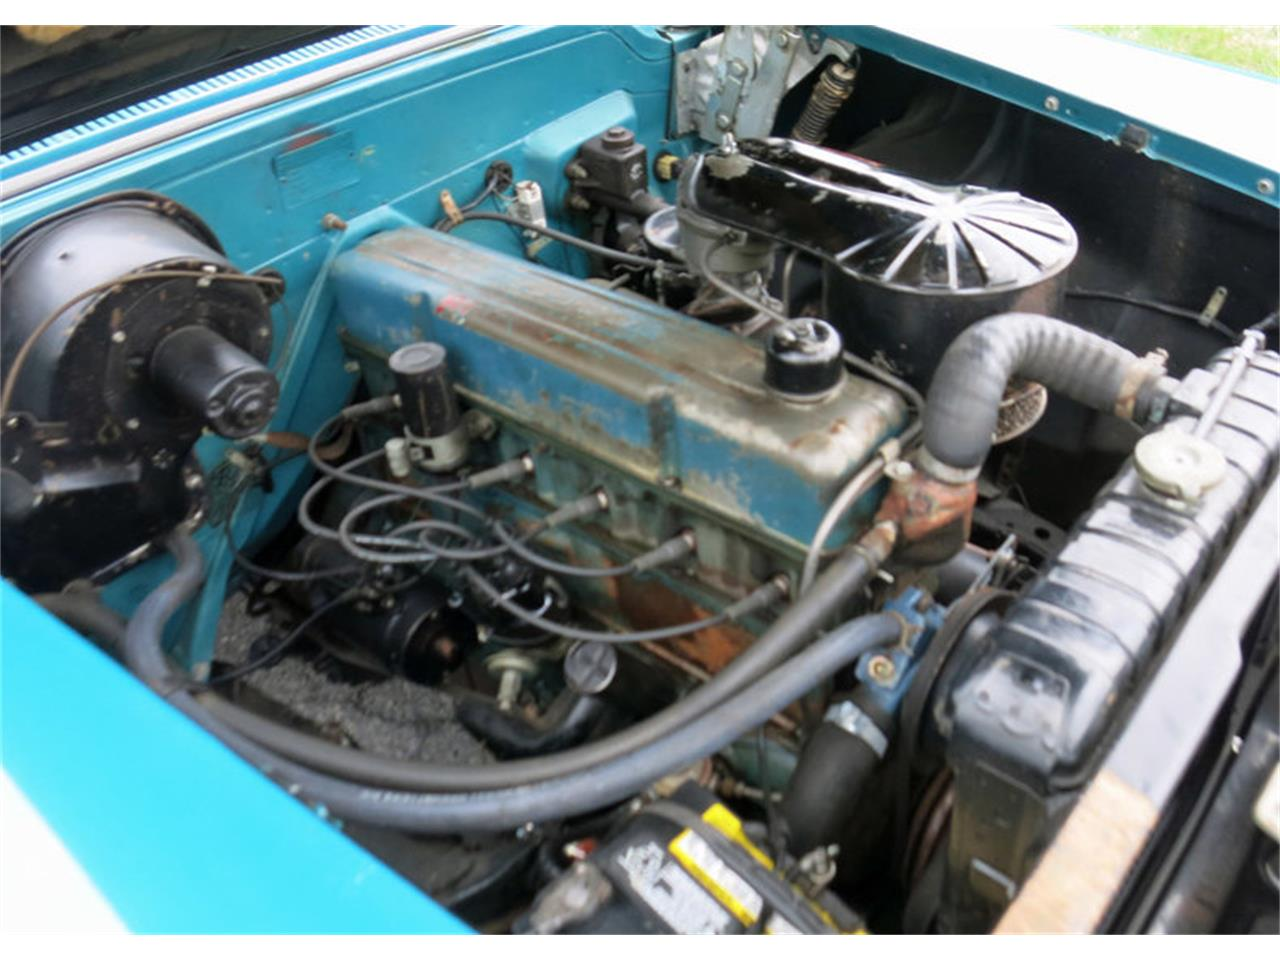 Large Picture of '58 Chevrolet Impala located in West Chester Pennsylvania - $45,000.00 - LRM8